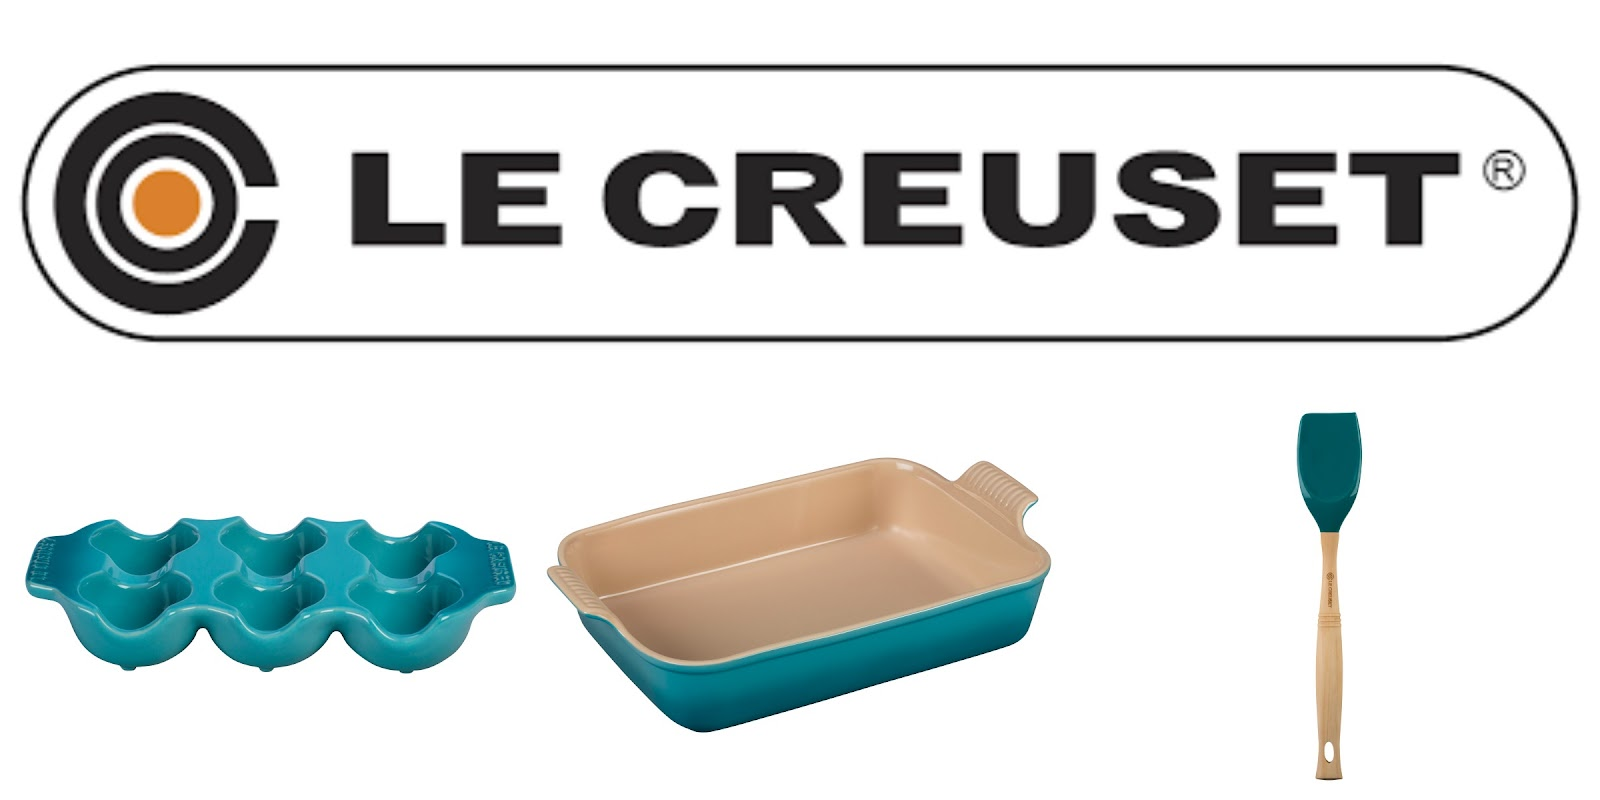 Le Creuset prize collage.jpg